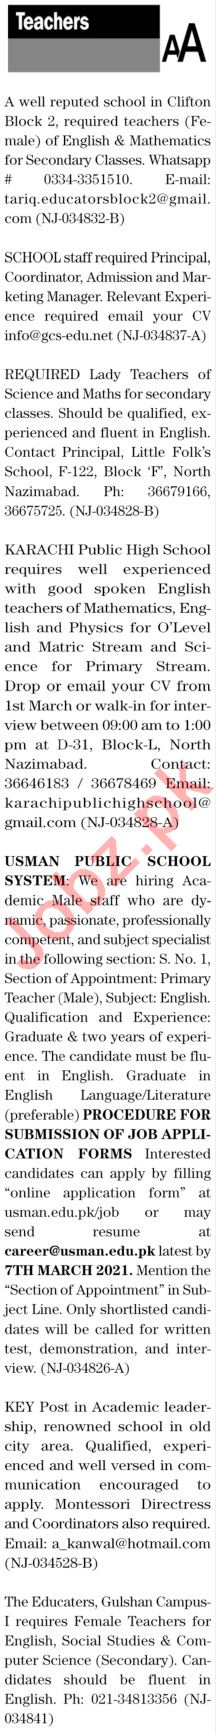 The News Sunday Classified Ads 28 Feb 2021 for Teaching